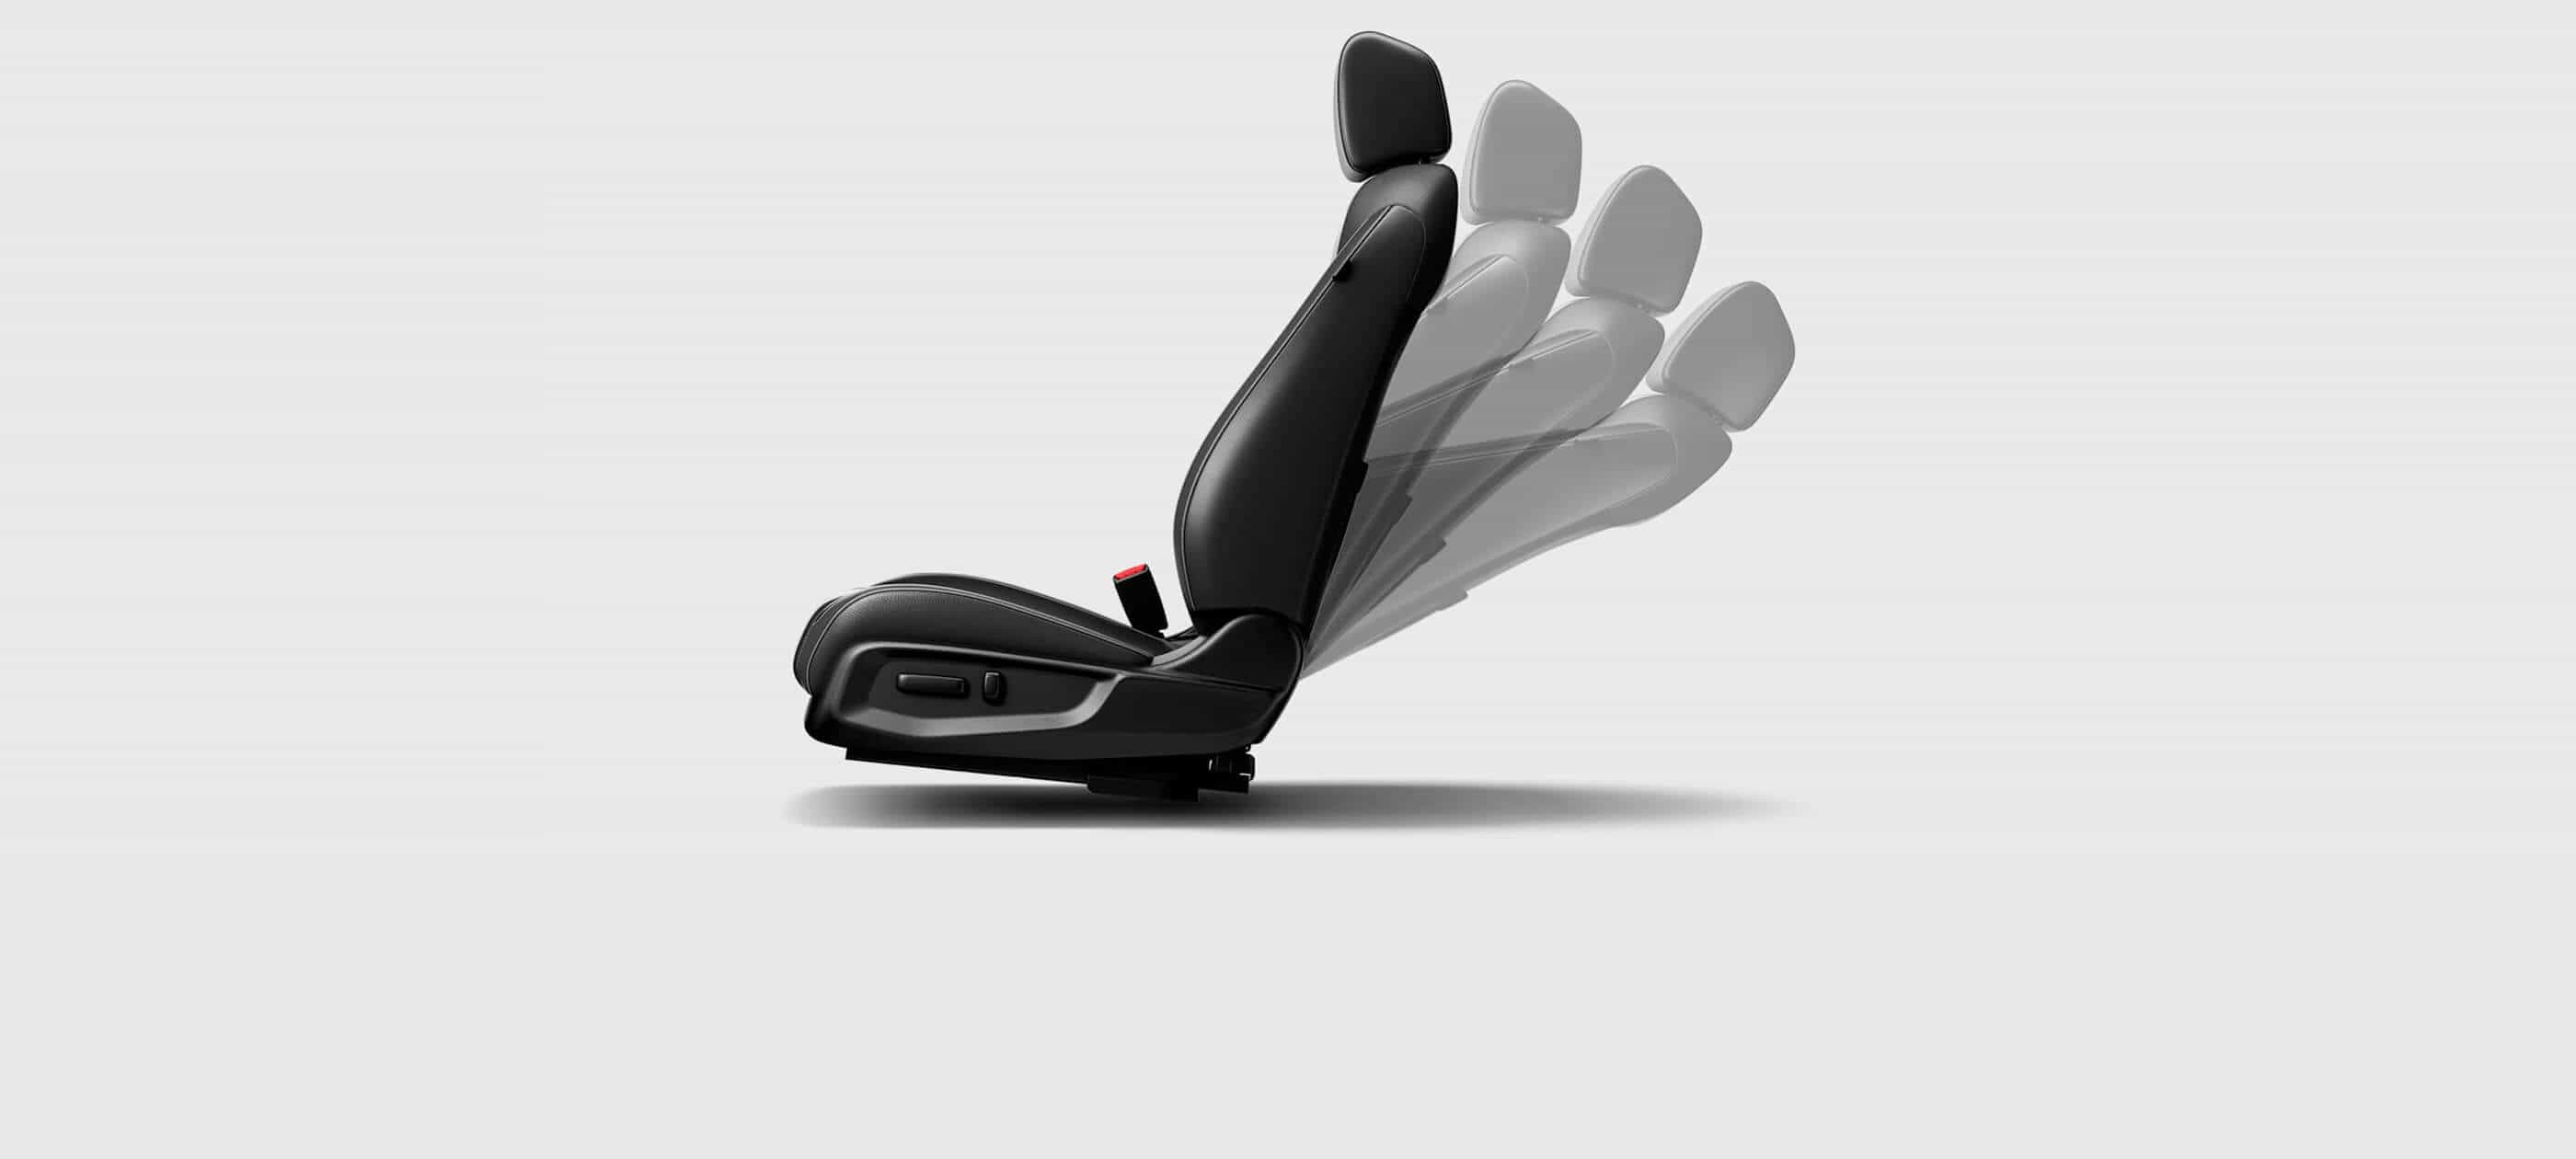 8-Way Power Driver's Seat